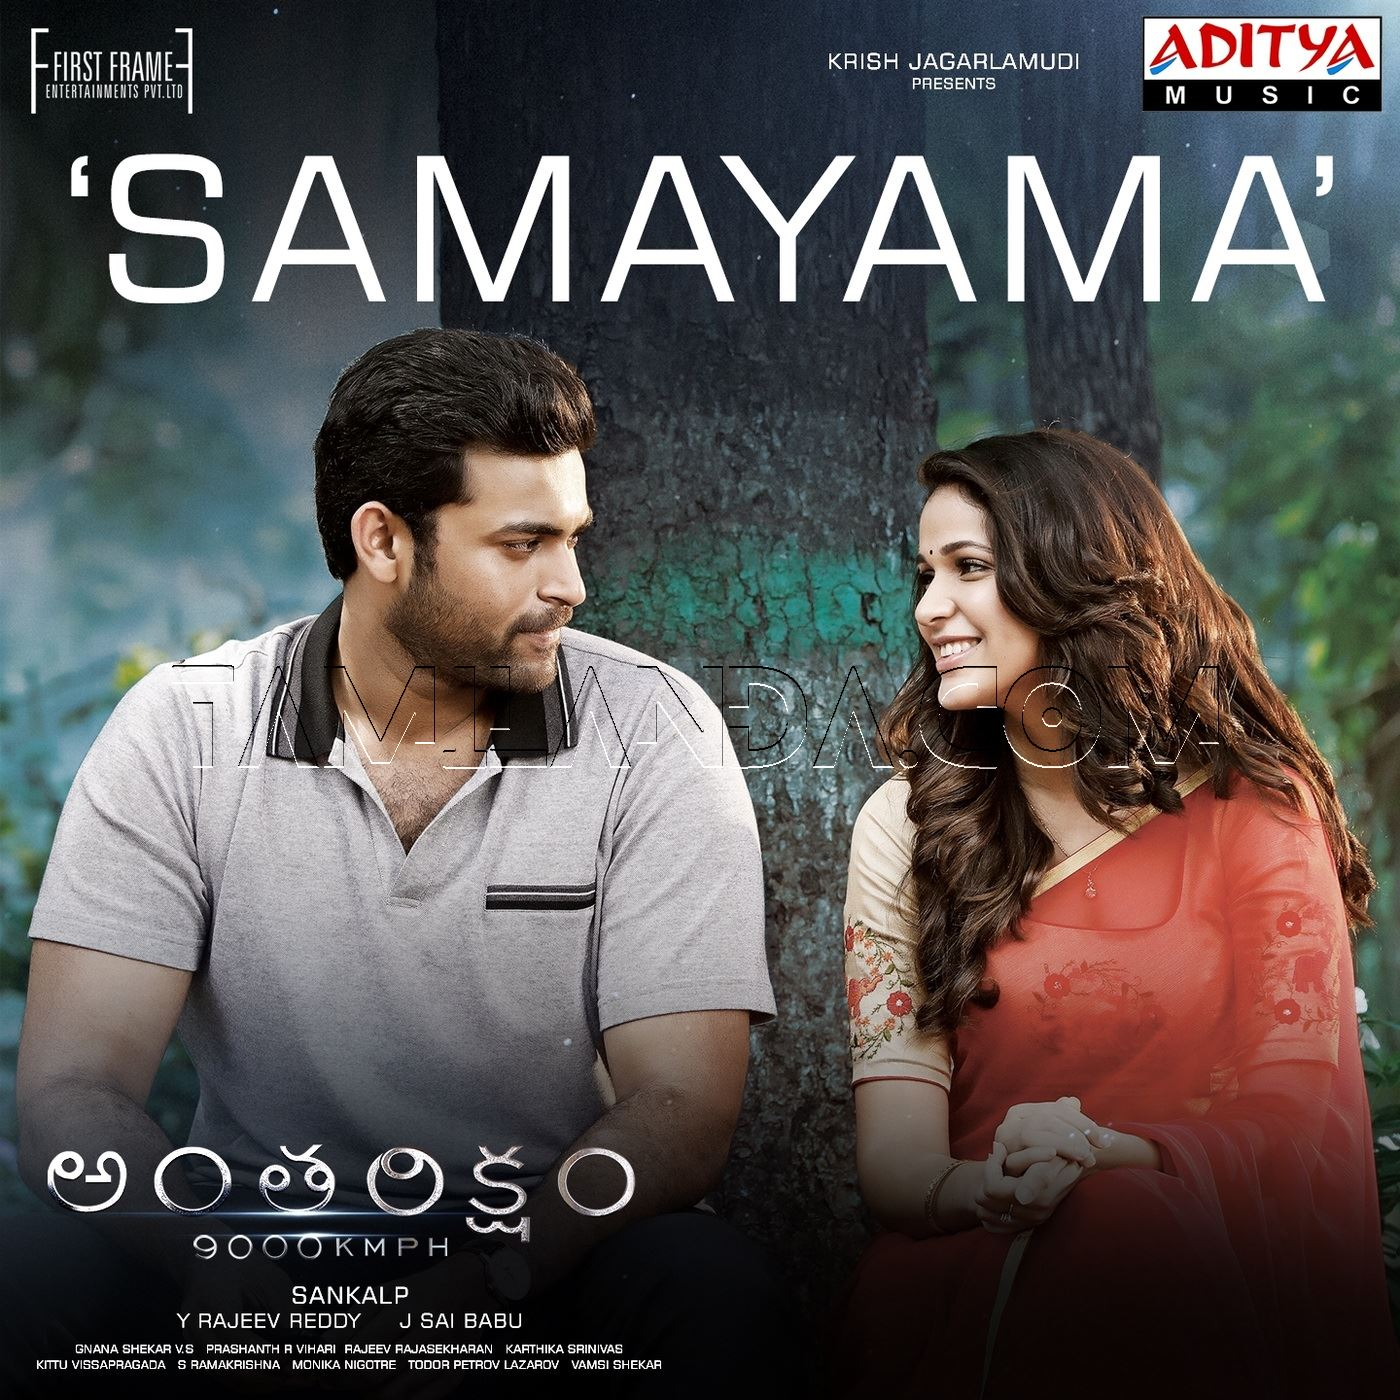 Samayama (From Antariksham 9000 Kmph) – Single FLAC Song (2018)